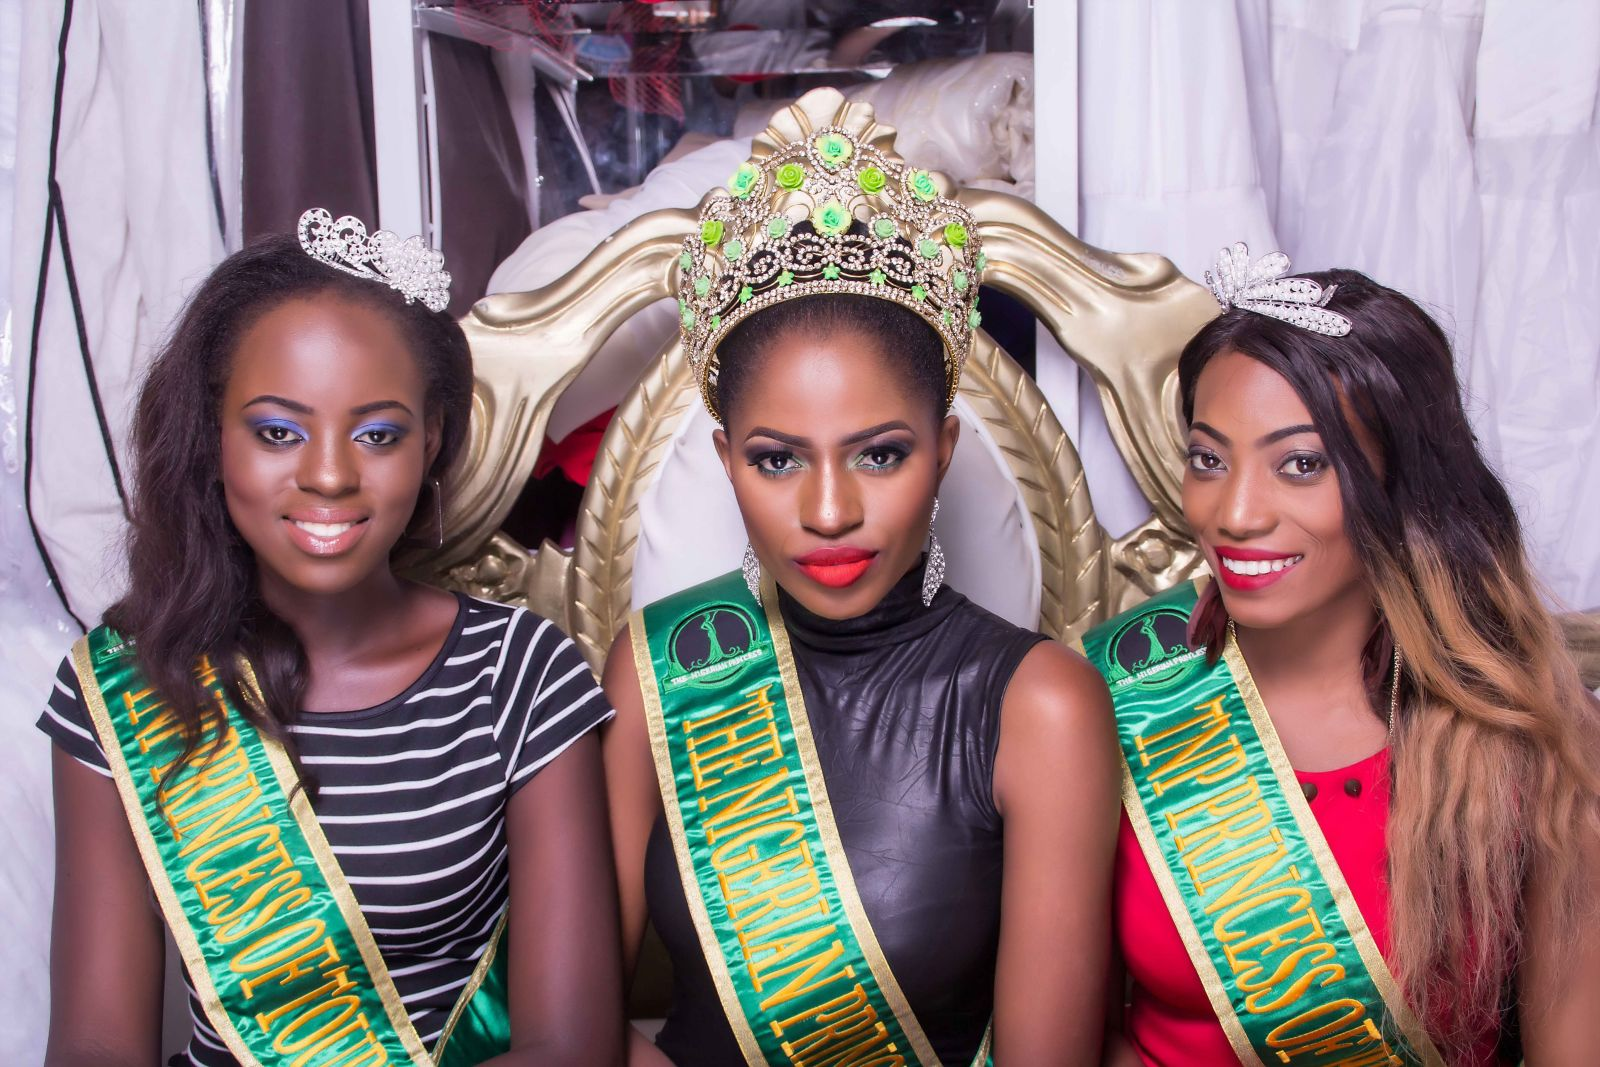 stella dimoko korkus com ian princess jane ekanem the soft spoken ebony beauty was one of the selected beauty queens who were special guests at the miss ia pageant in accra last month and also